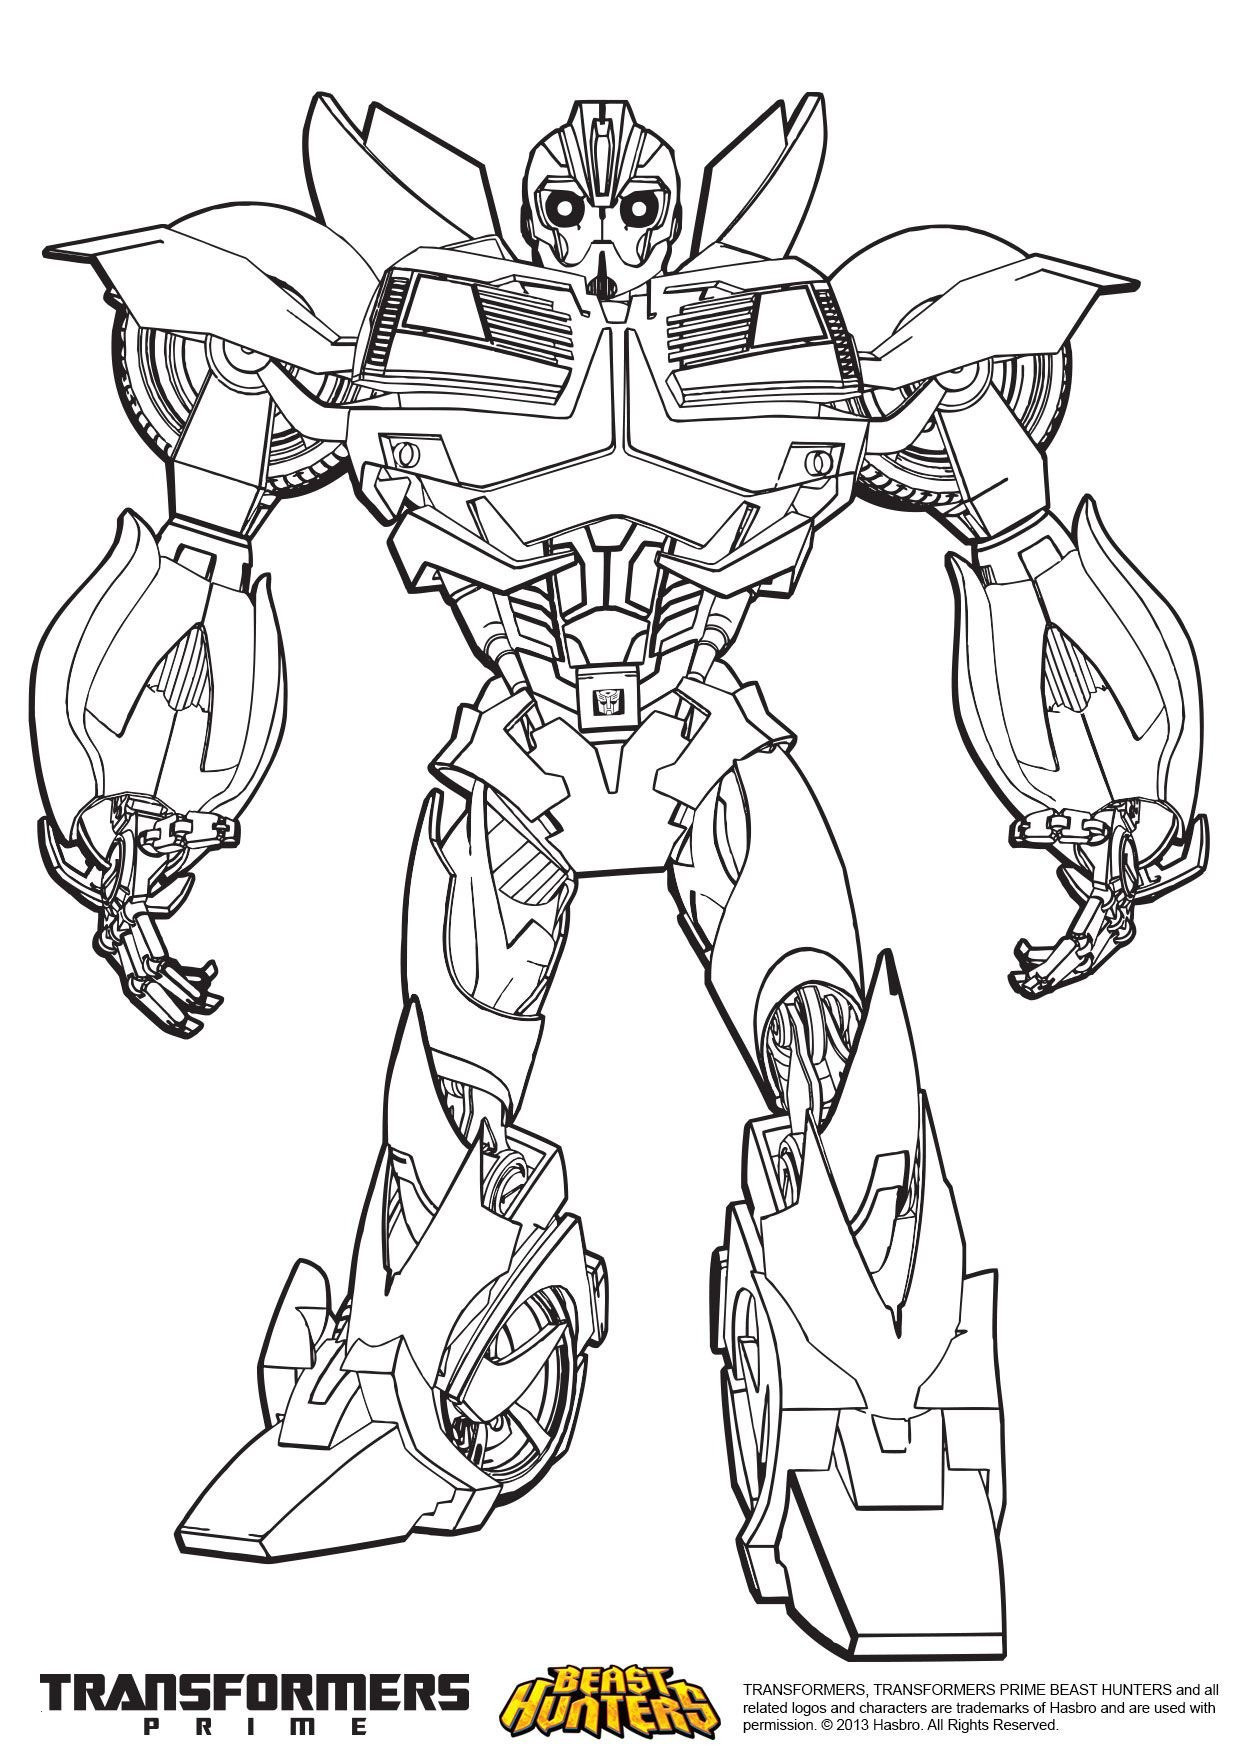 Rescue Bots Ausmalbilder Frisch Free Printable Optimus Prime Coloring Pages New Rescue Bots Coloring Stock